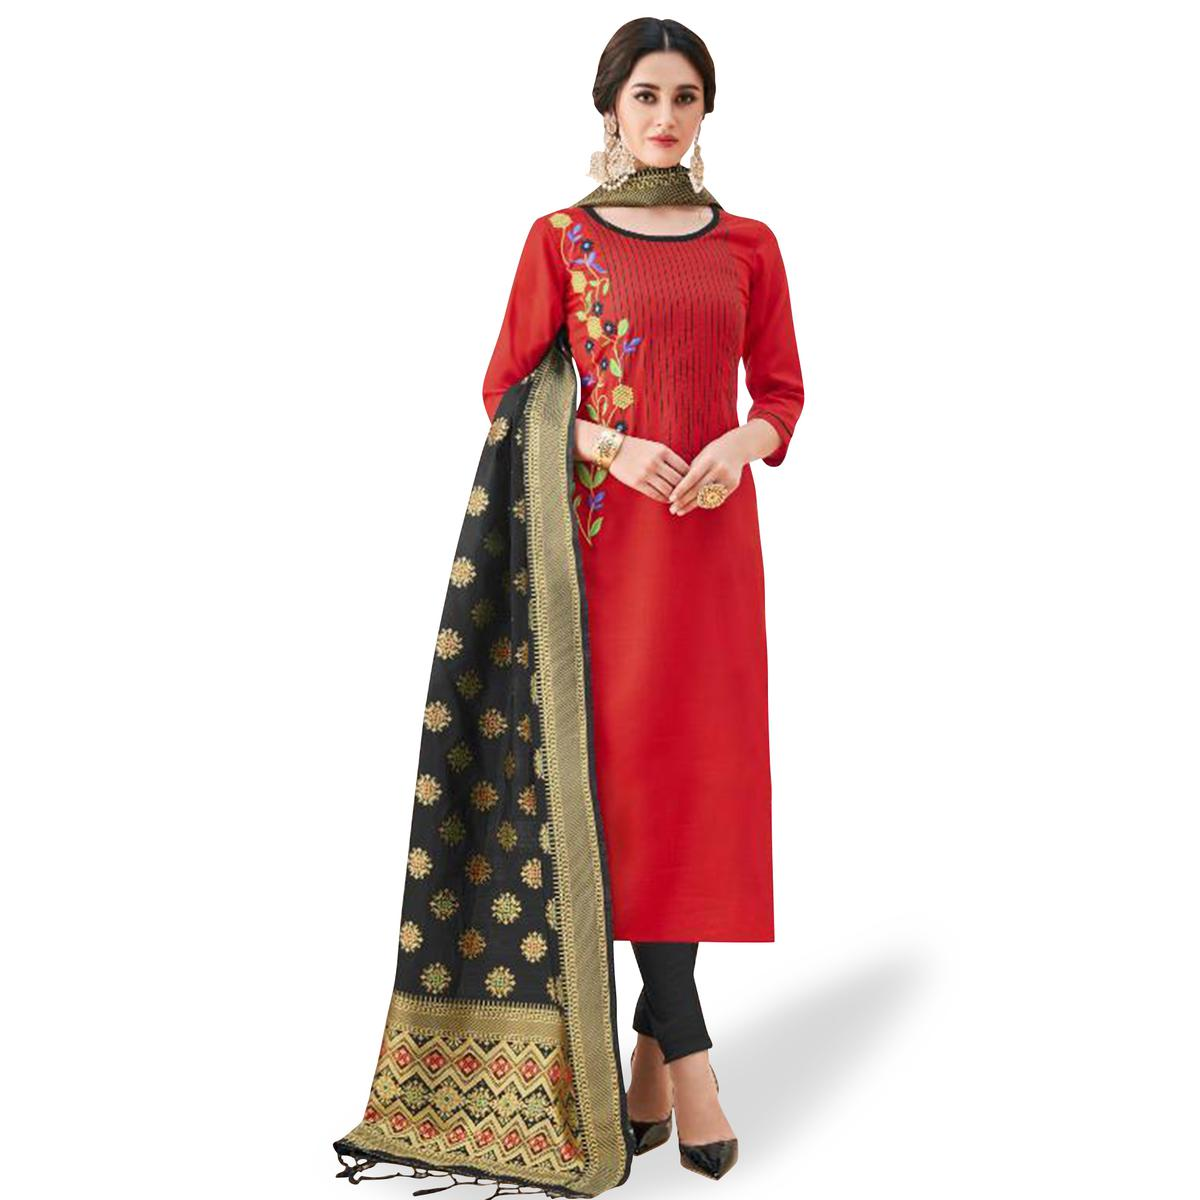 Fantastic Red Colored Partywear Embroidered Cotton Suit With Banarasi Silk Dupatta